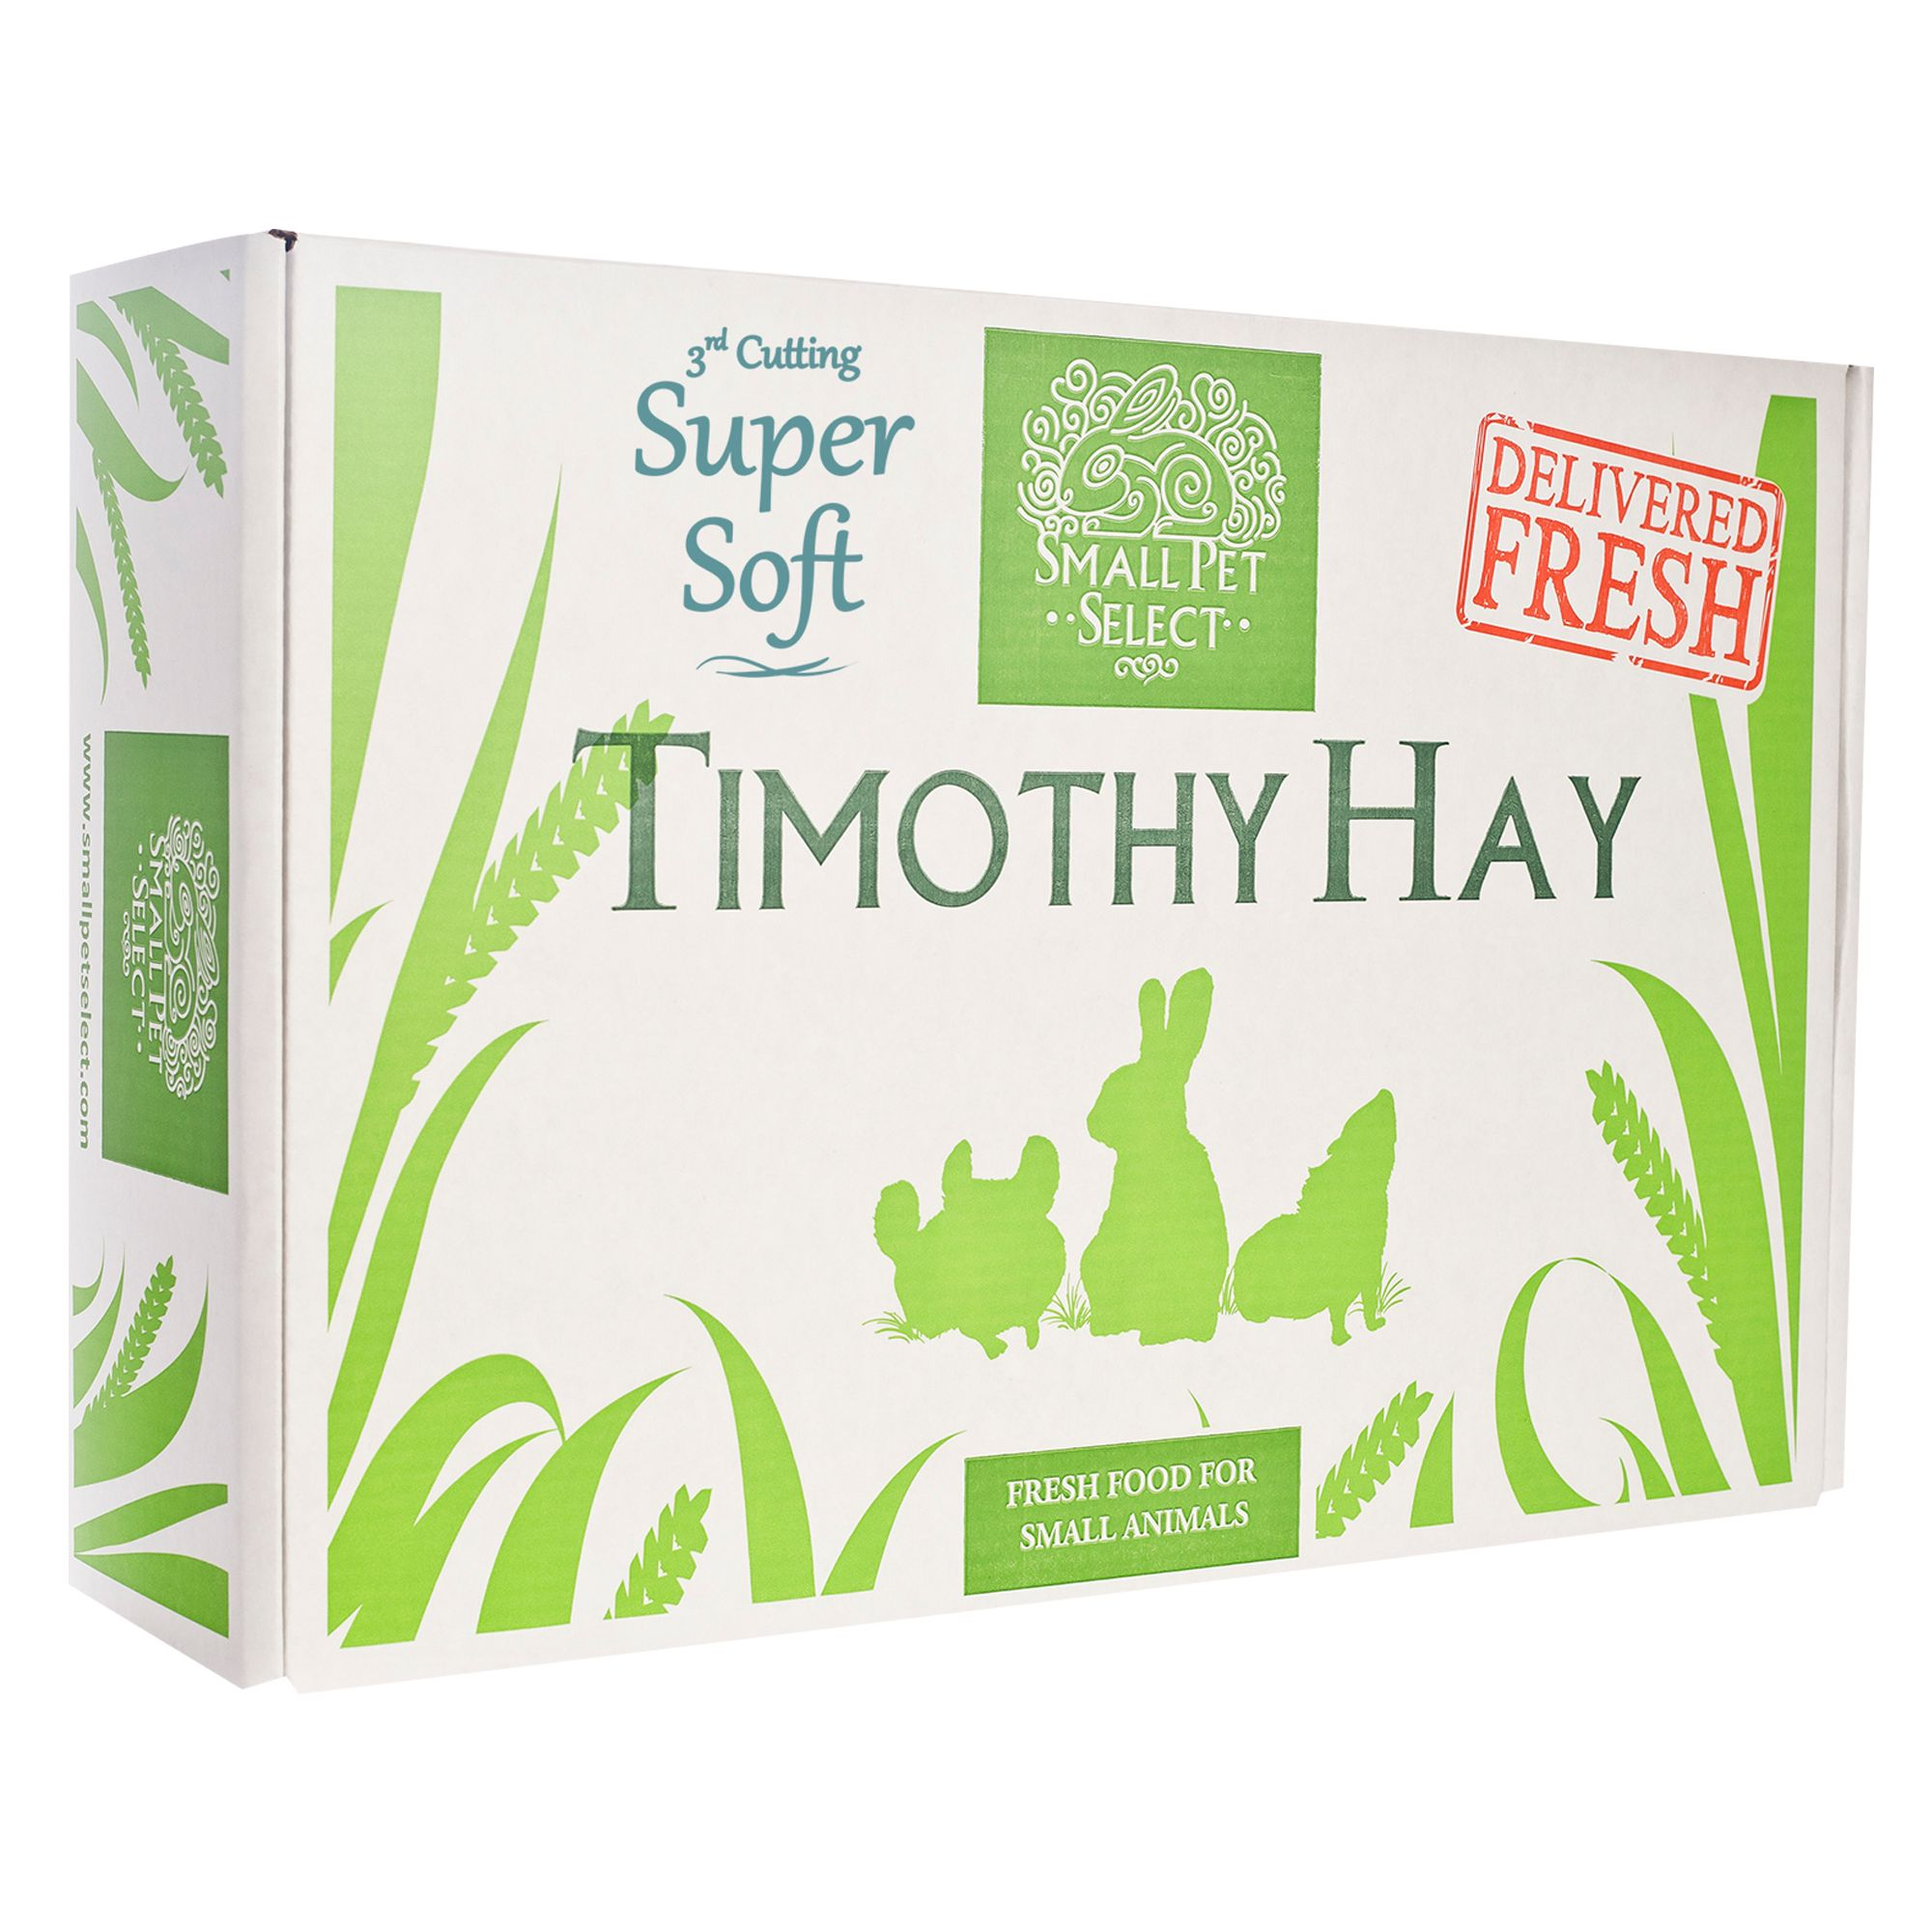 Small Pet Select Third Cutting Timothy Hay Size 10 Lb